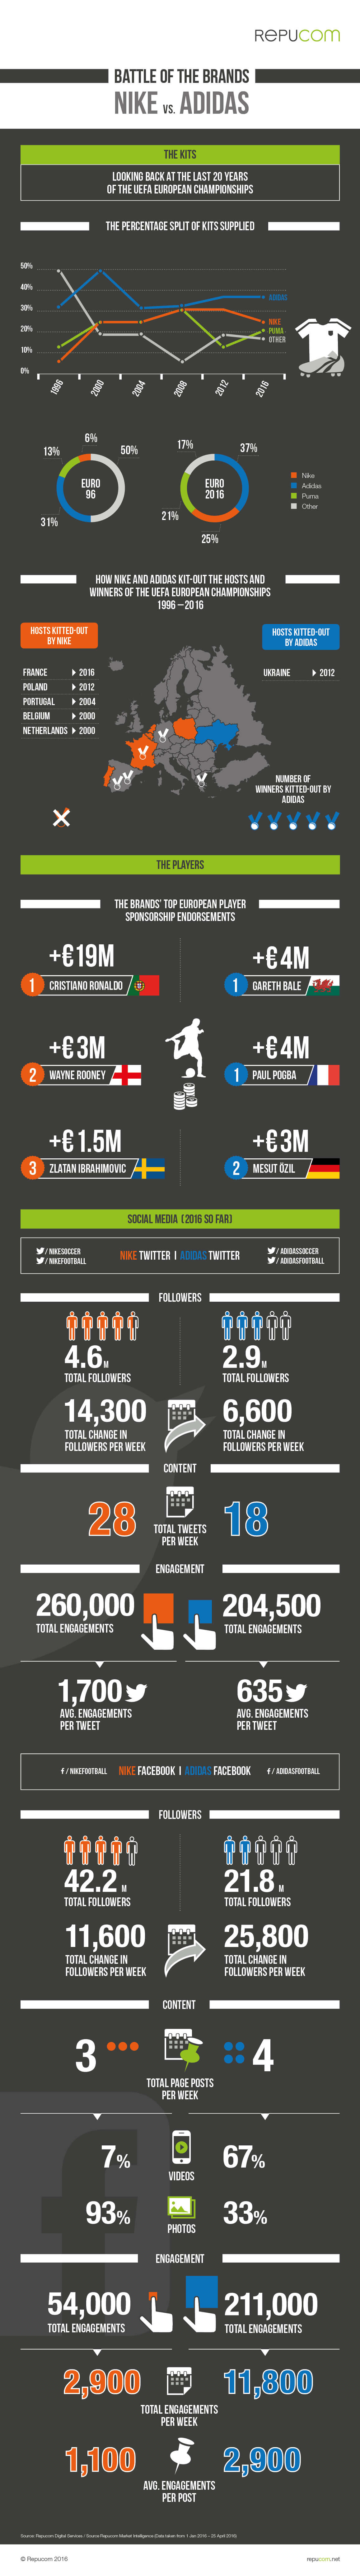 nike-vs-adidas-battle-of-the-brands-infographic-2016